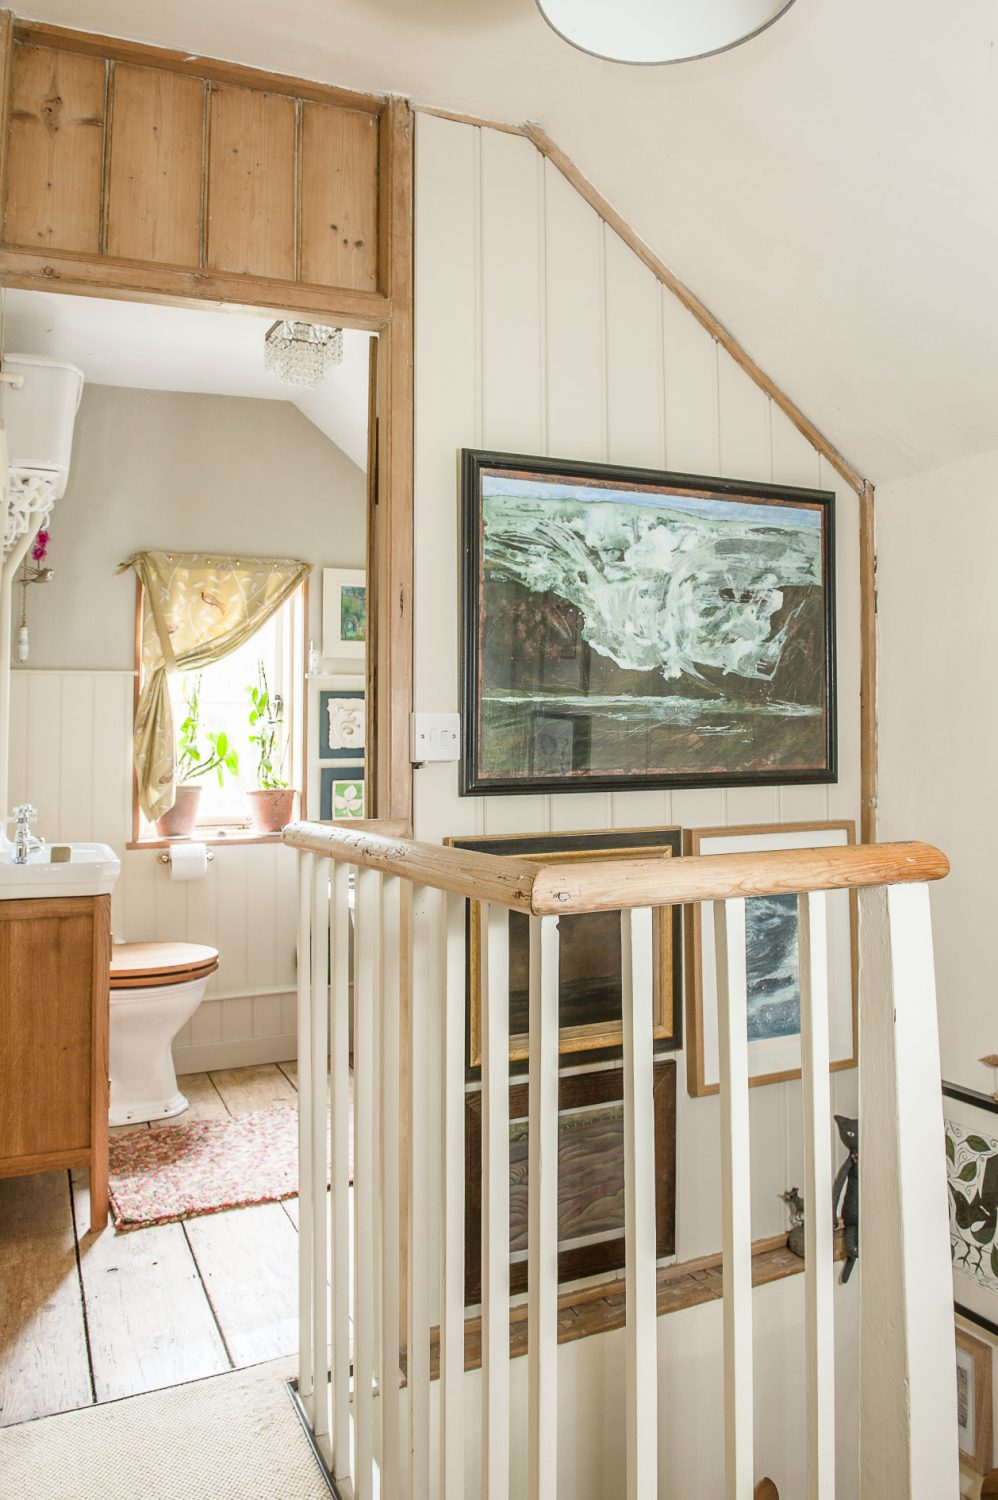 Wendy and Rob have installed two new bathrooms. The walls surrounding the staircase are lined with prints and paintings. At one end of the landing, the first floor bathroom features an elegant roll-top bath